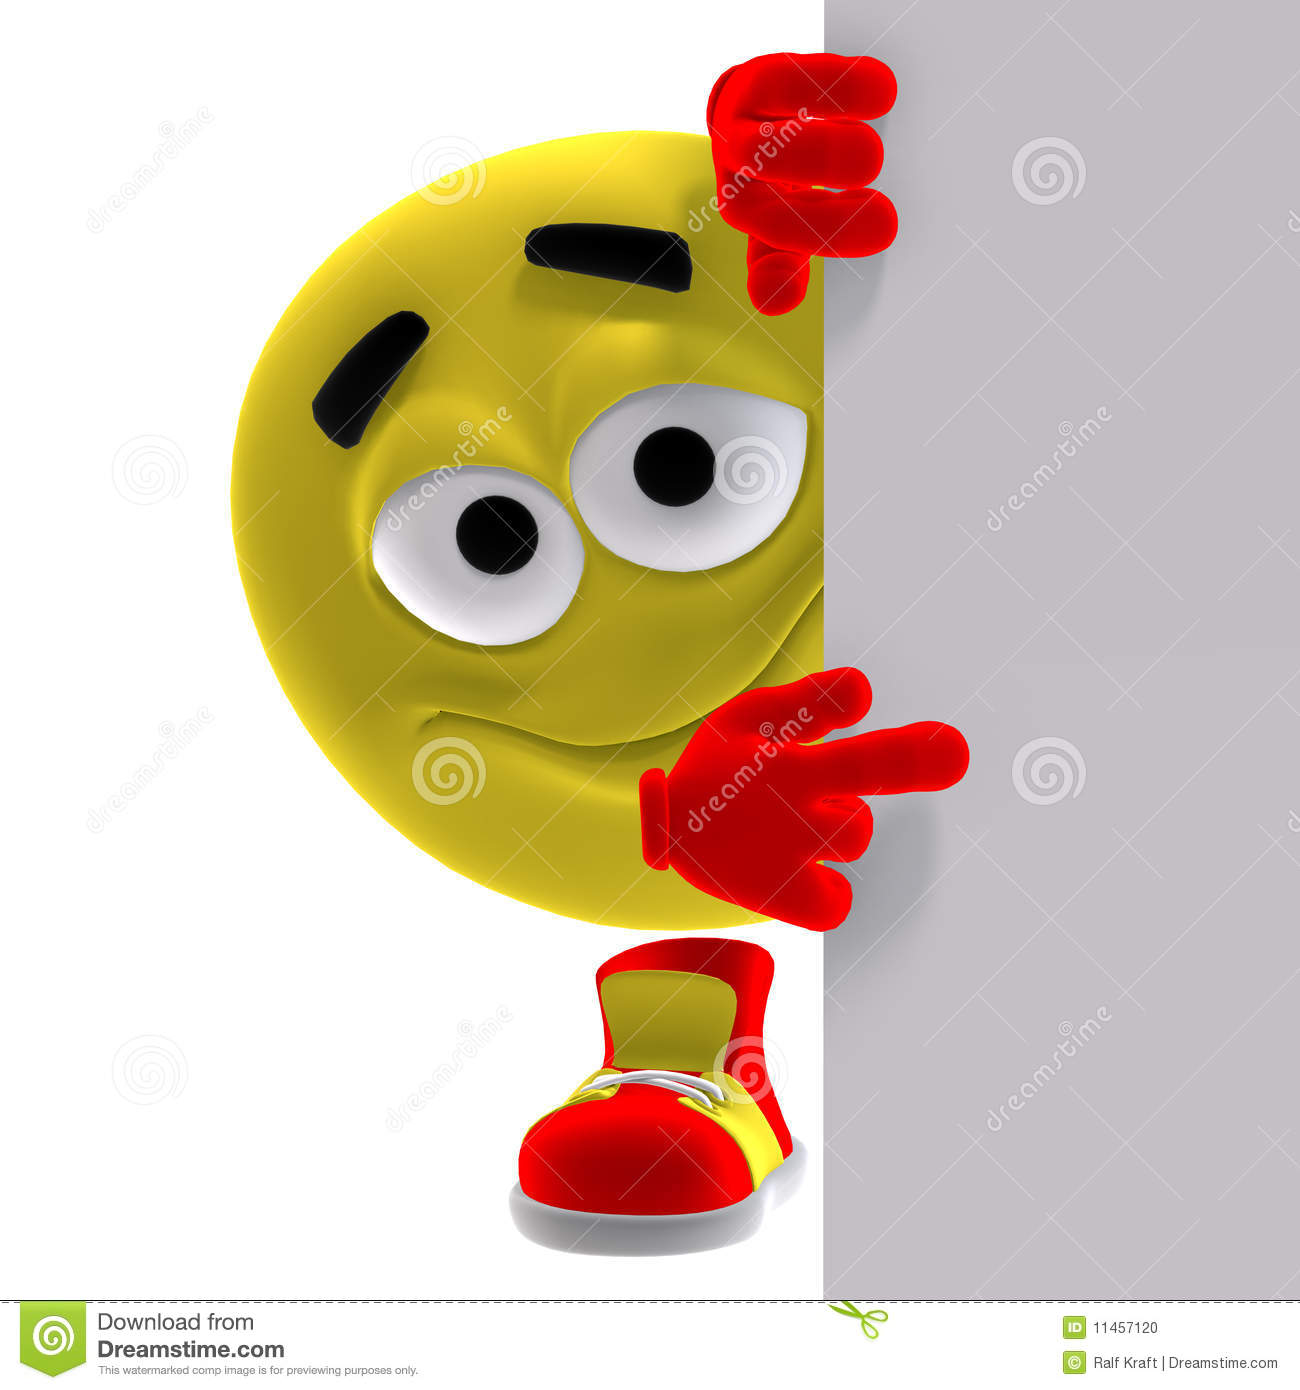 Cool And Funny Yellow Emoticon Says Look Here Stock ...